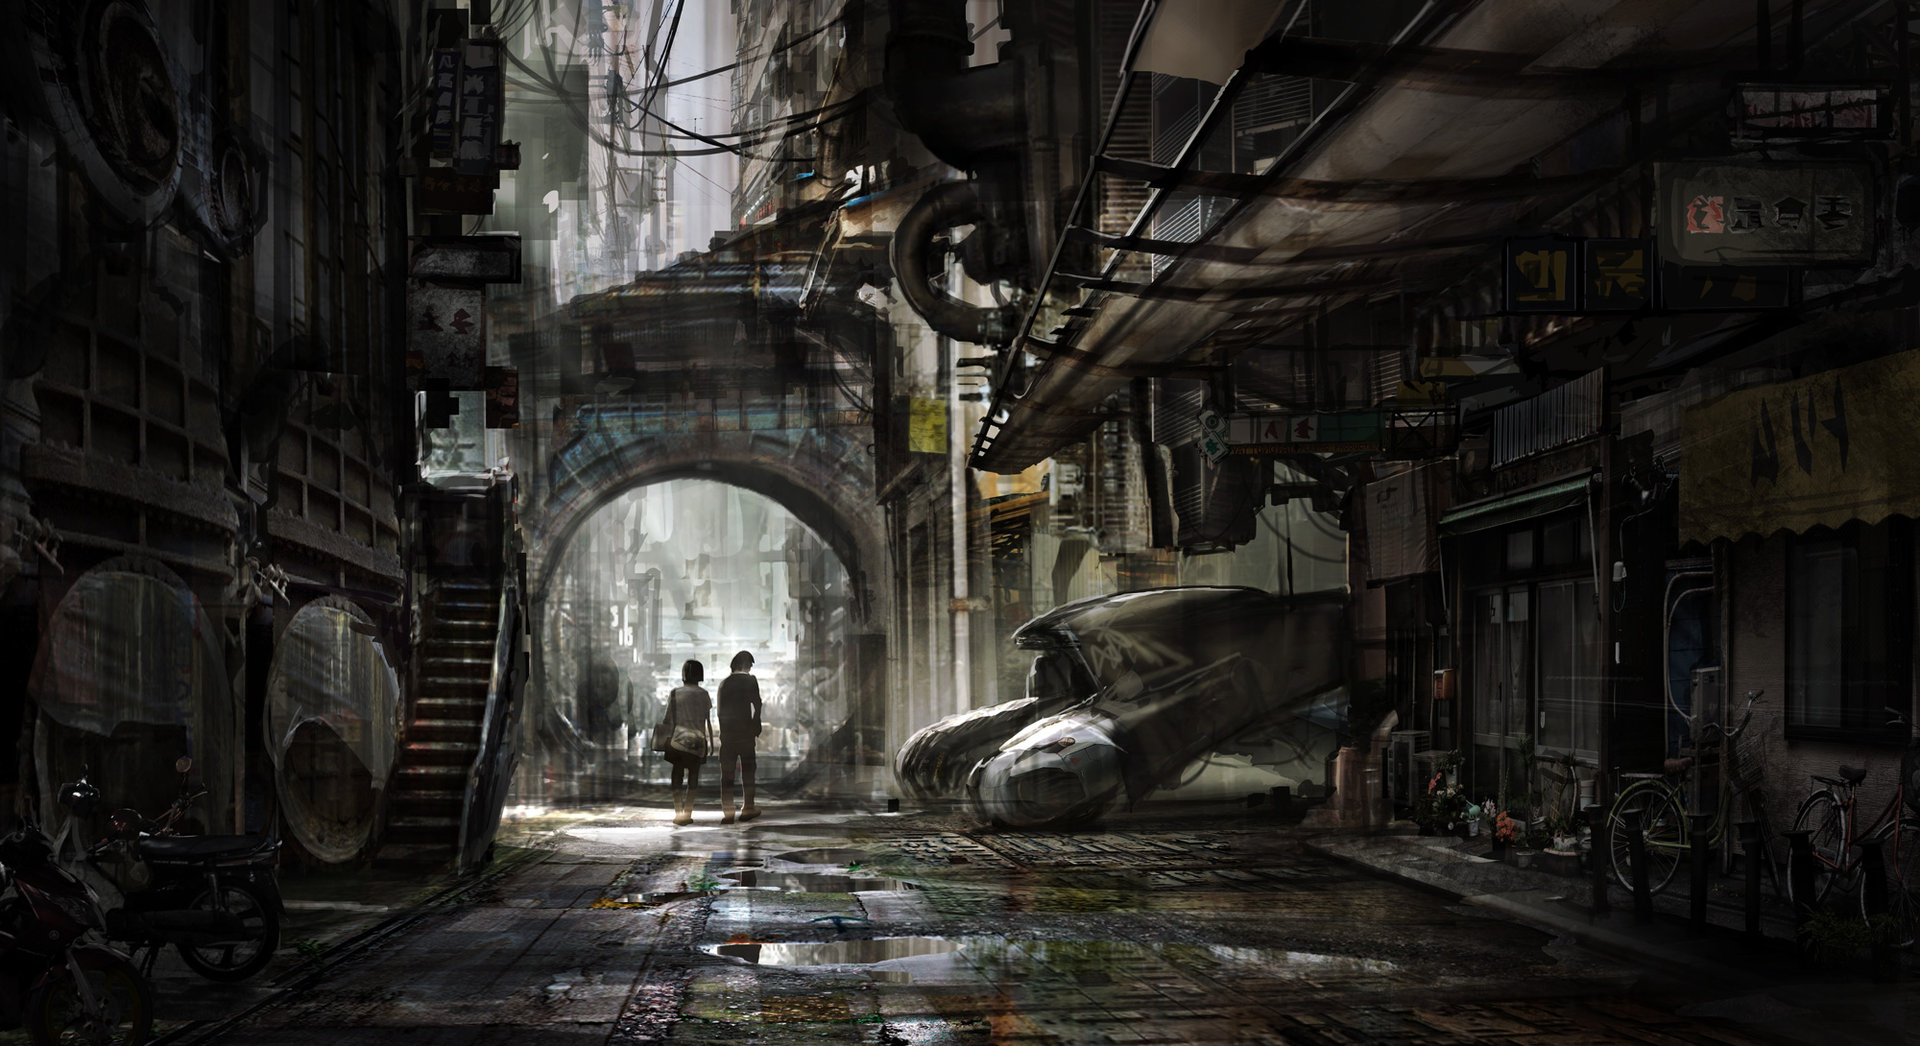 Jarold sng alley paintover